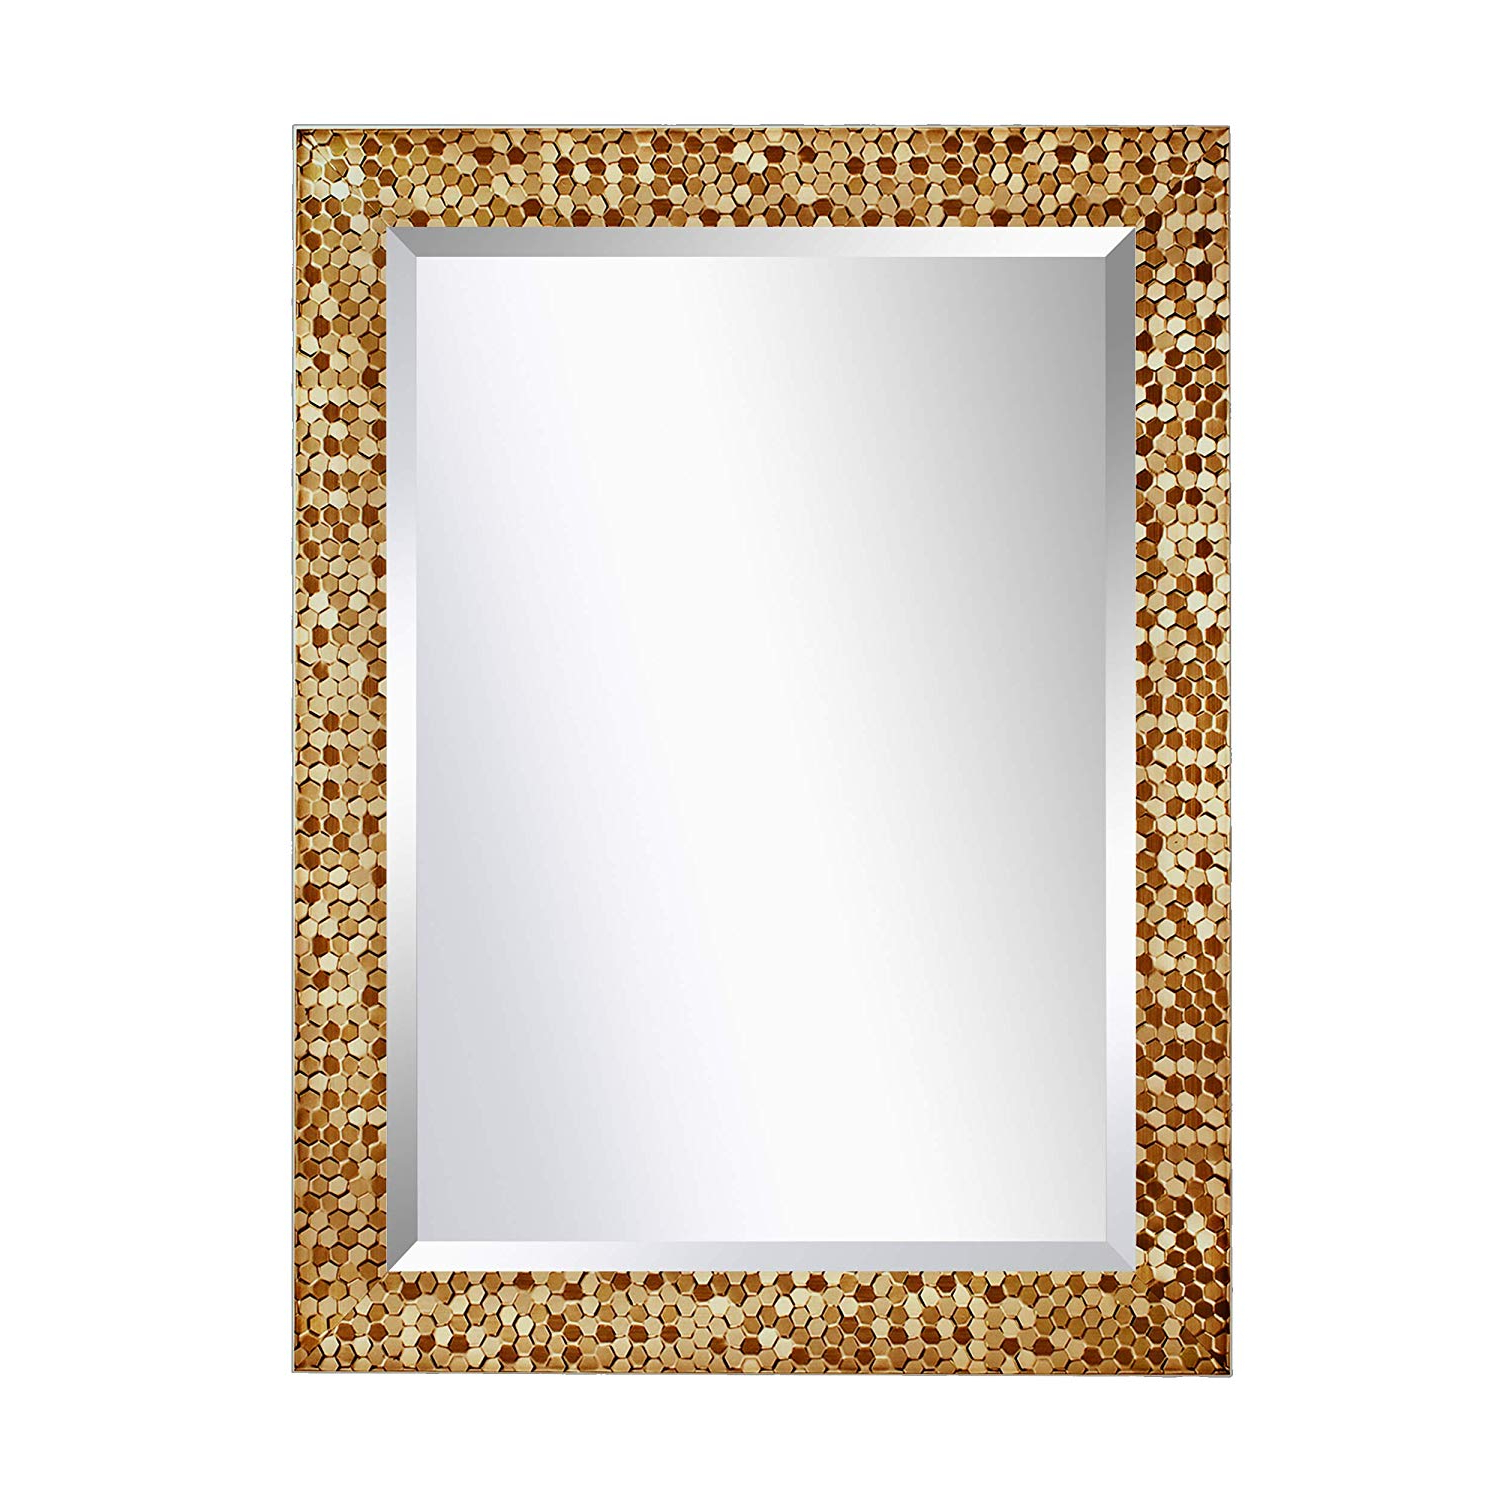 Most Recent Mirror Trend Gold Mosaic Design Framed Decorative Wall Mirror Large  Rectangle Mirror For Living Room, Bedroom, Vanity, Dining Room, Bathroom  Hangs With Regard To Long Wall Mirrors For Bedroom (View 19 of 20)